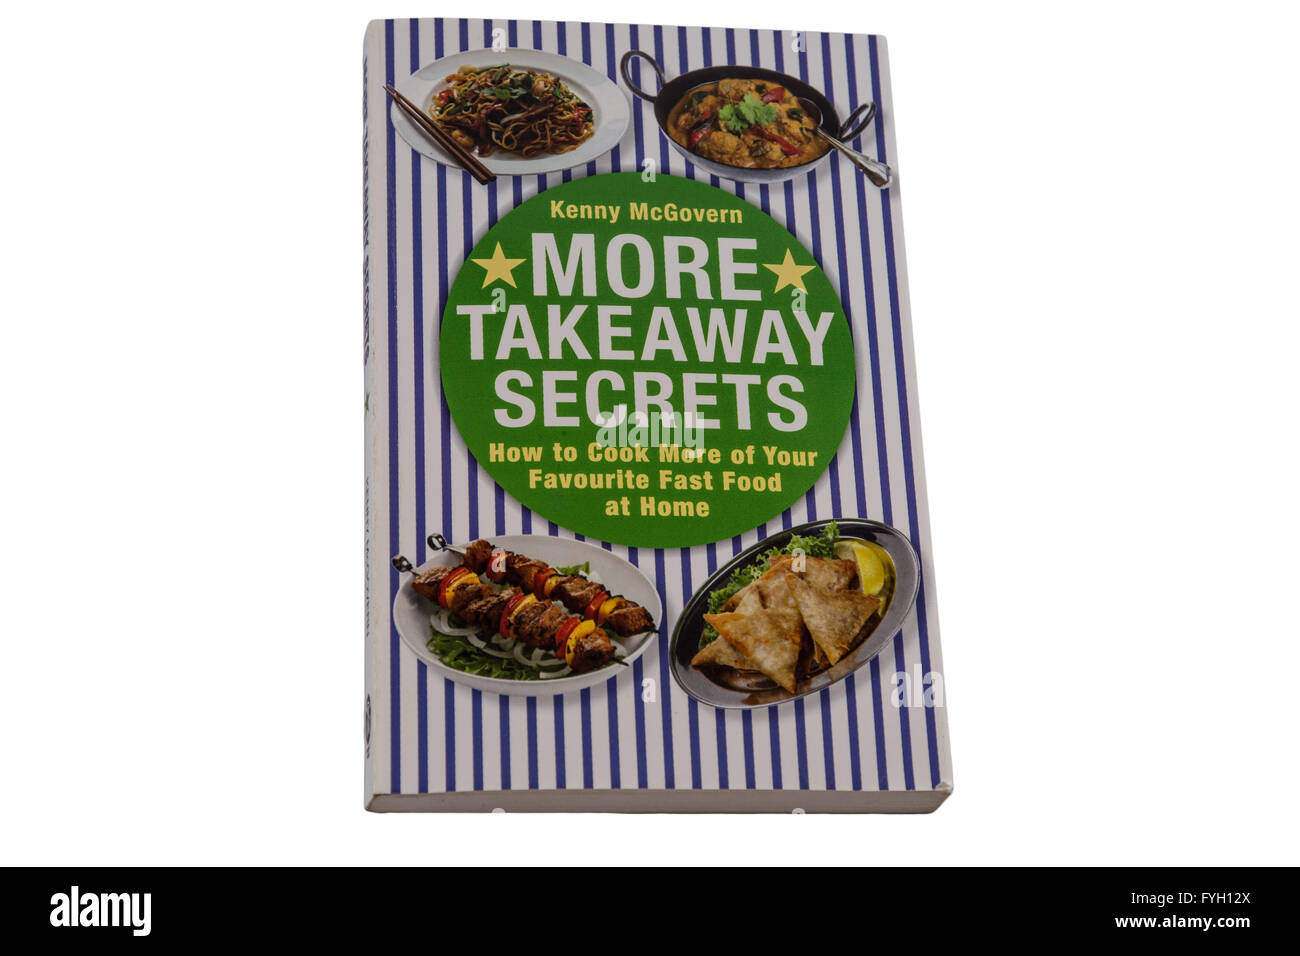 More Takeaway Secrets by Kenny McGovern - Stock Image